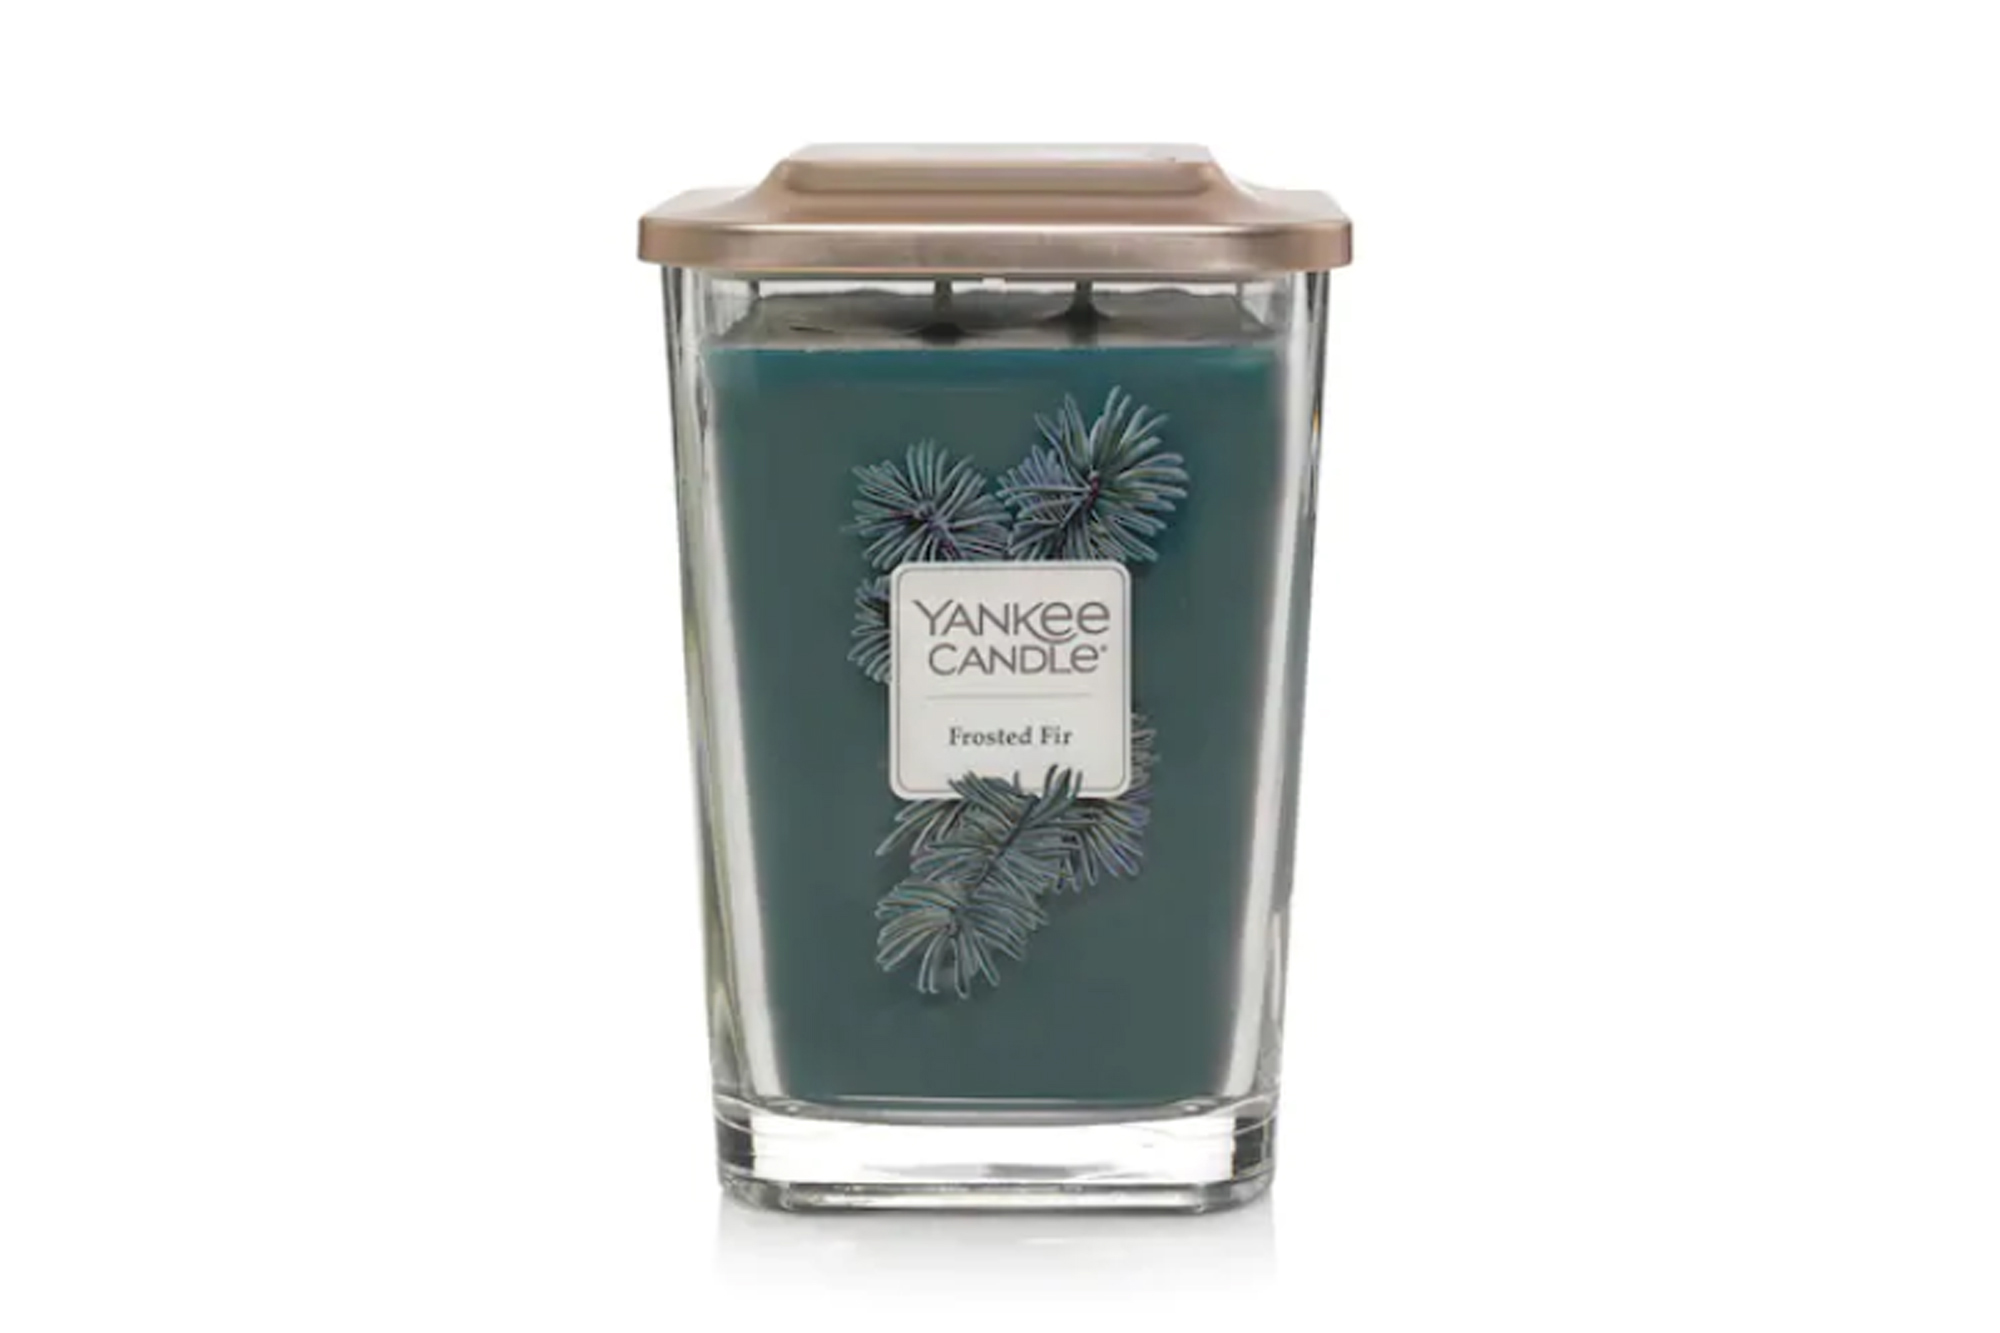 Yankee Candle Frosted Fir